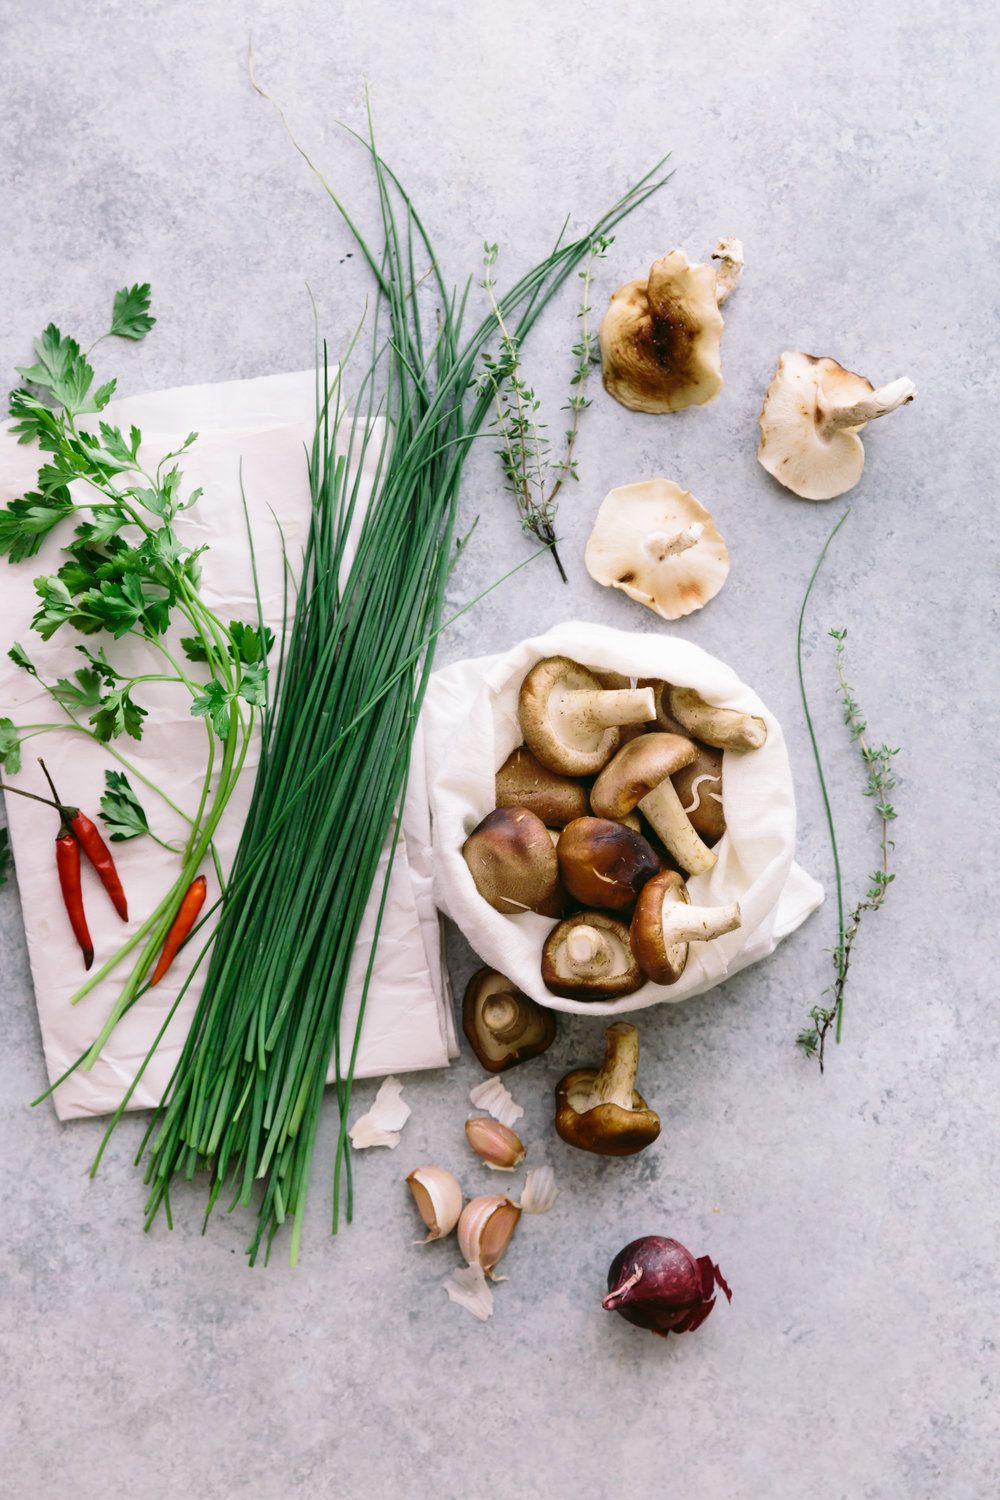 mushrooms prepping1.jpg